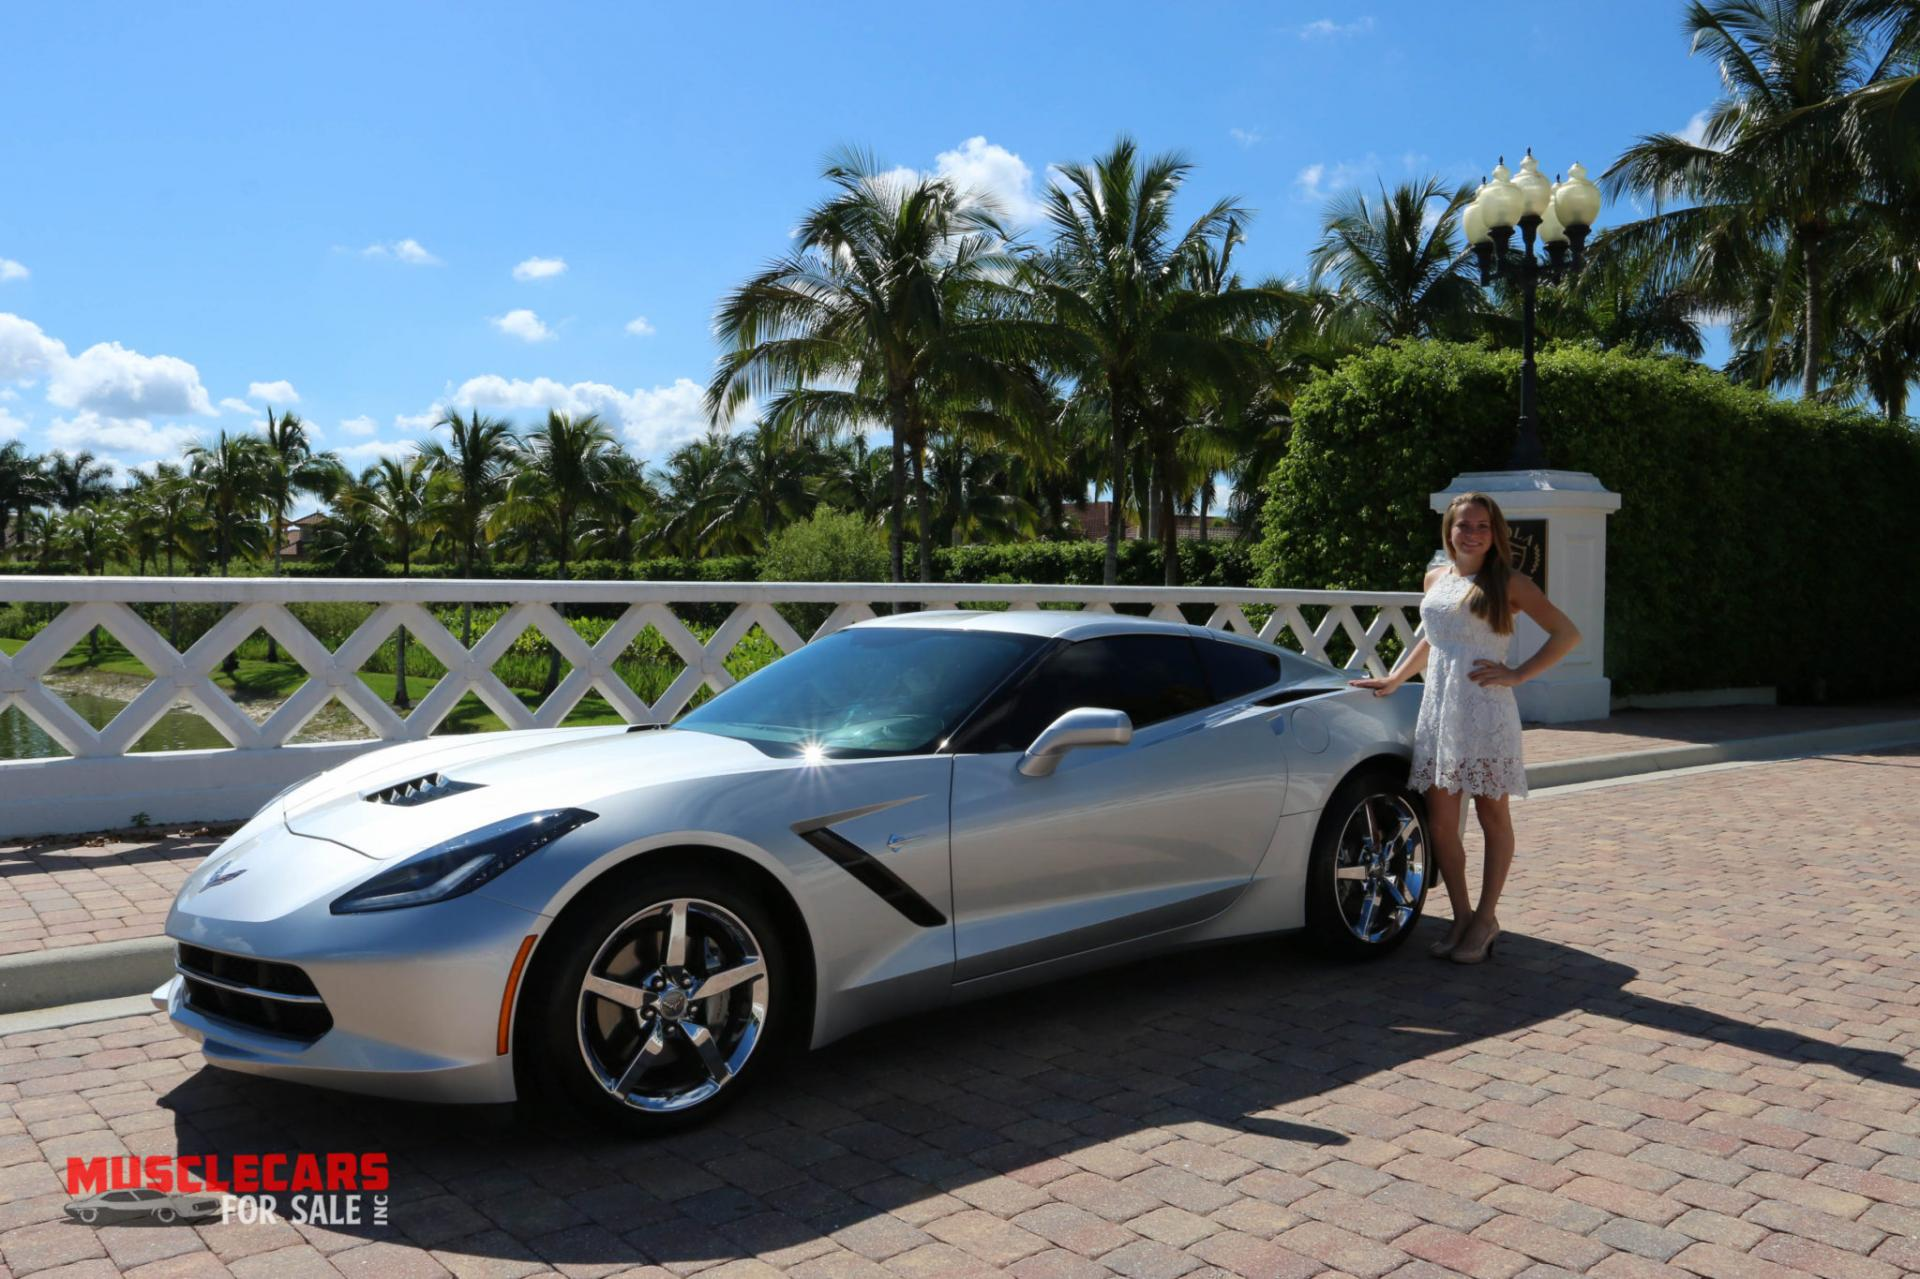 Used 2015 Chevrolet Corvette for sale Sold at Muscle Cars for Sale Inc. in Fort Myers FL 33912 6